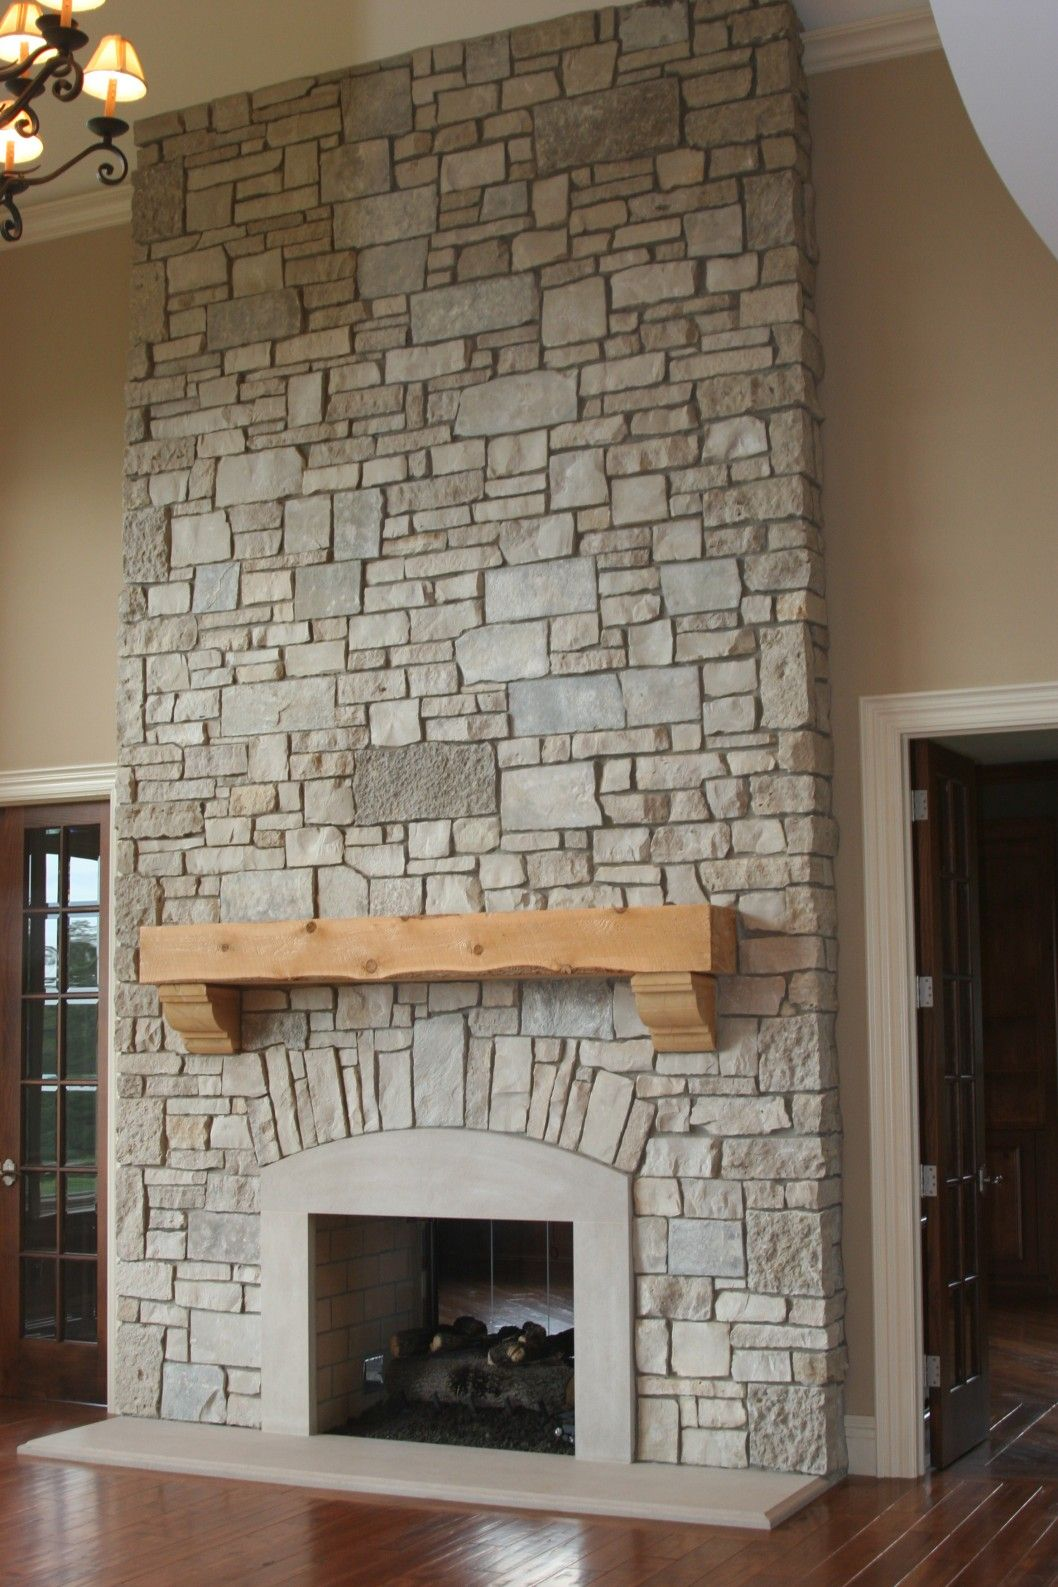 Cultured stone fireplace surround - Architecture Stone Fireplace Ideas Wood Mantels Living Room Stone Wall Tiles Cast Stone Fireplace Mantels